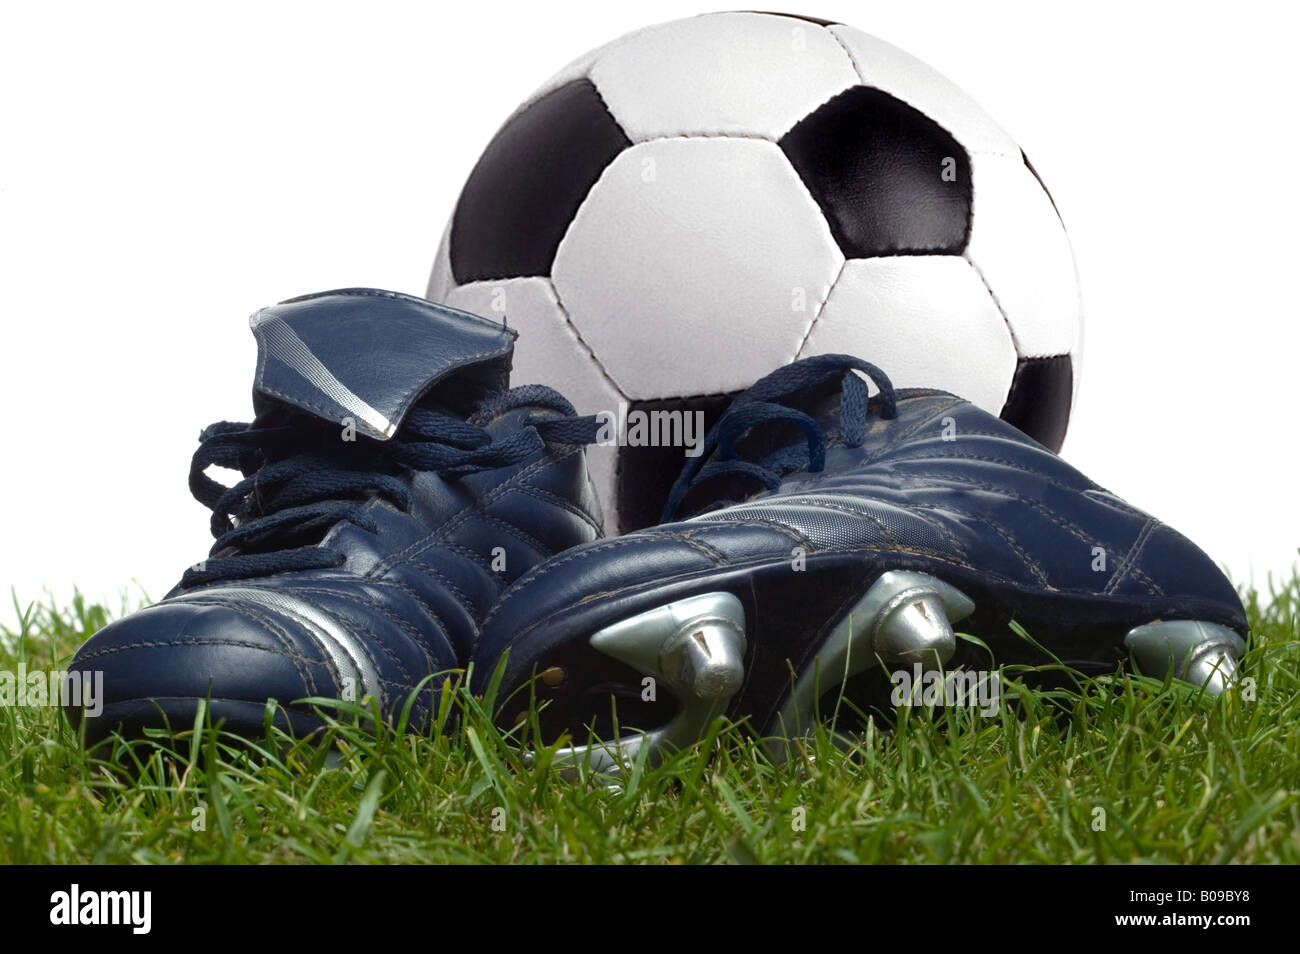 Leather Football Boots Imágenes De Stock   Leather Football Boots ... 4d5945cc2faa6